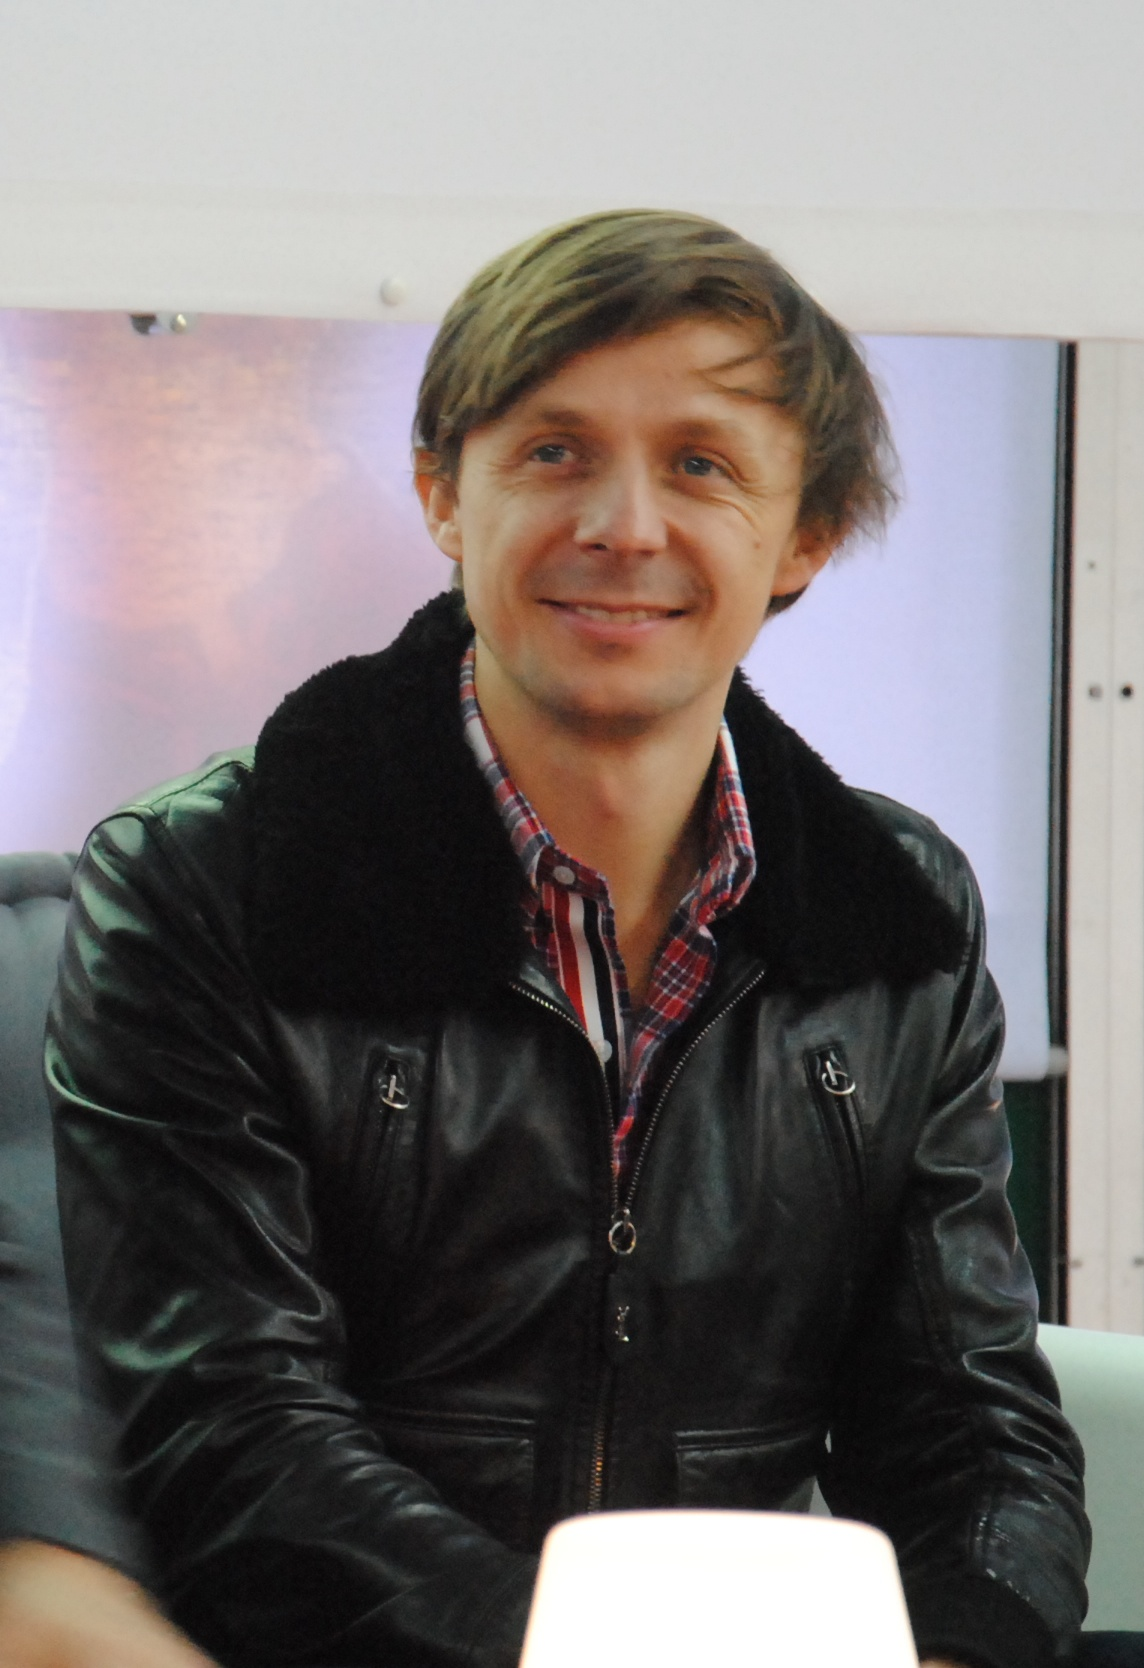 The 42-year old son of father (?) and mother(?) Martin Solveig in 2018 photo. Martin Solveig earned a  million dollar salary - leaving the net worth at 5 million in 2018